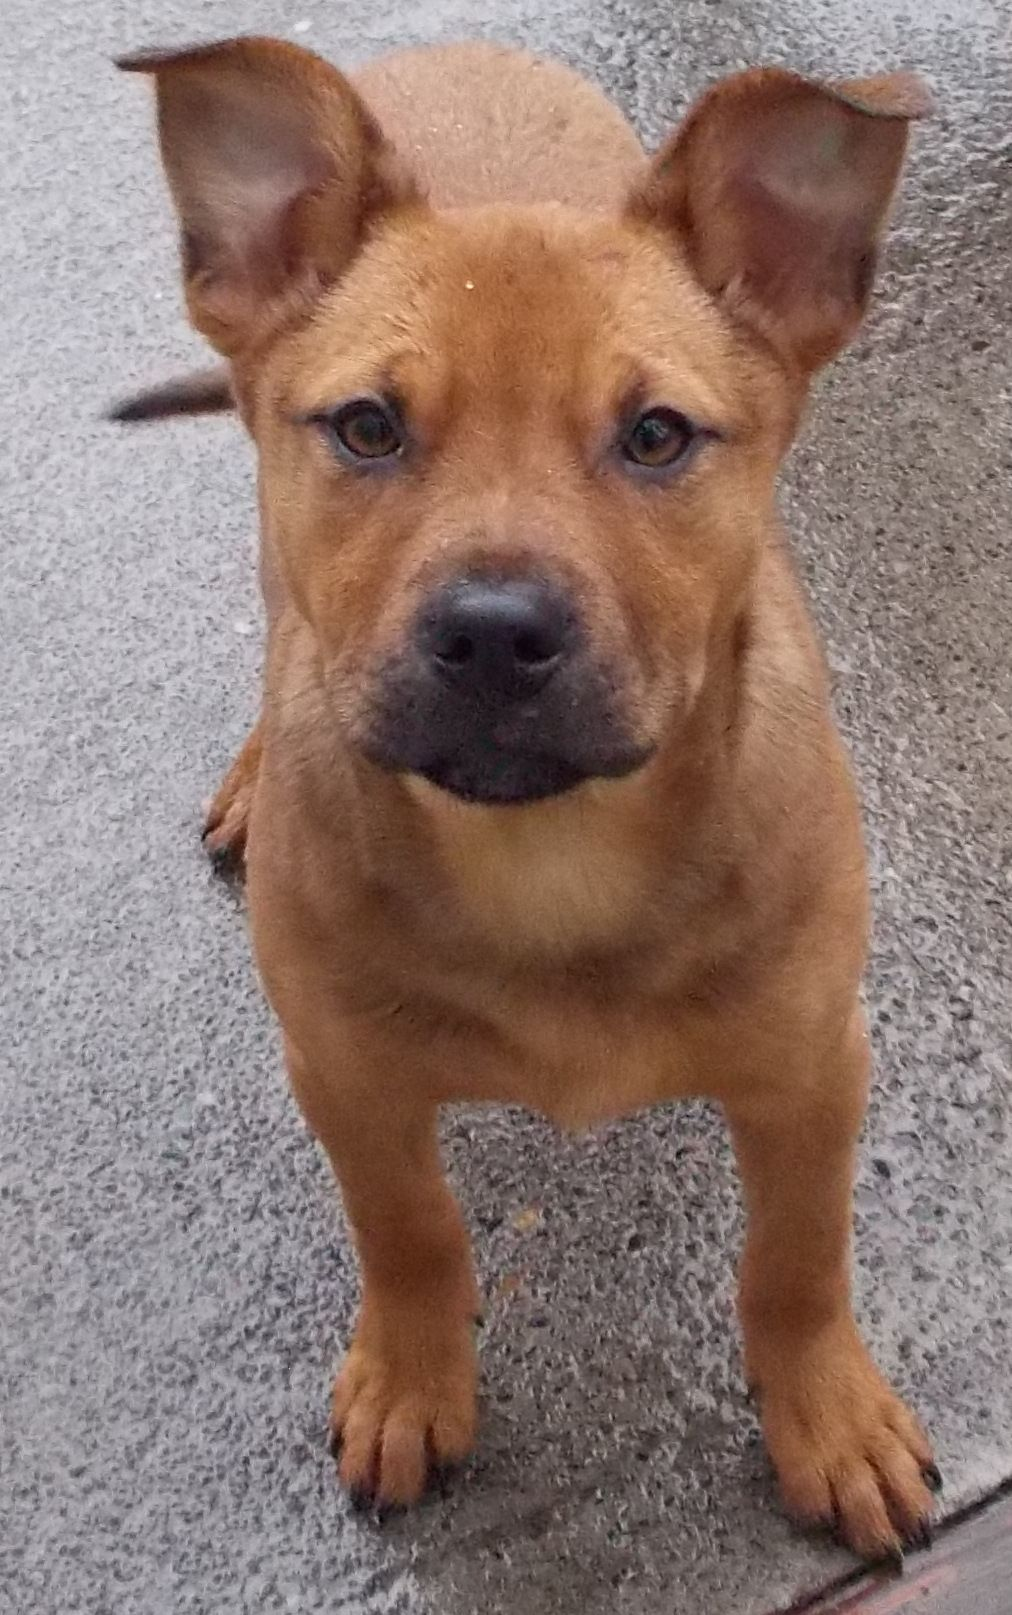 That face! Chester needs a home! Help! Animal hospital